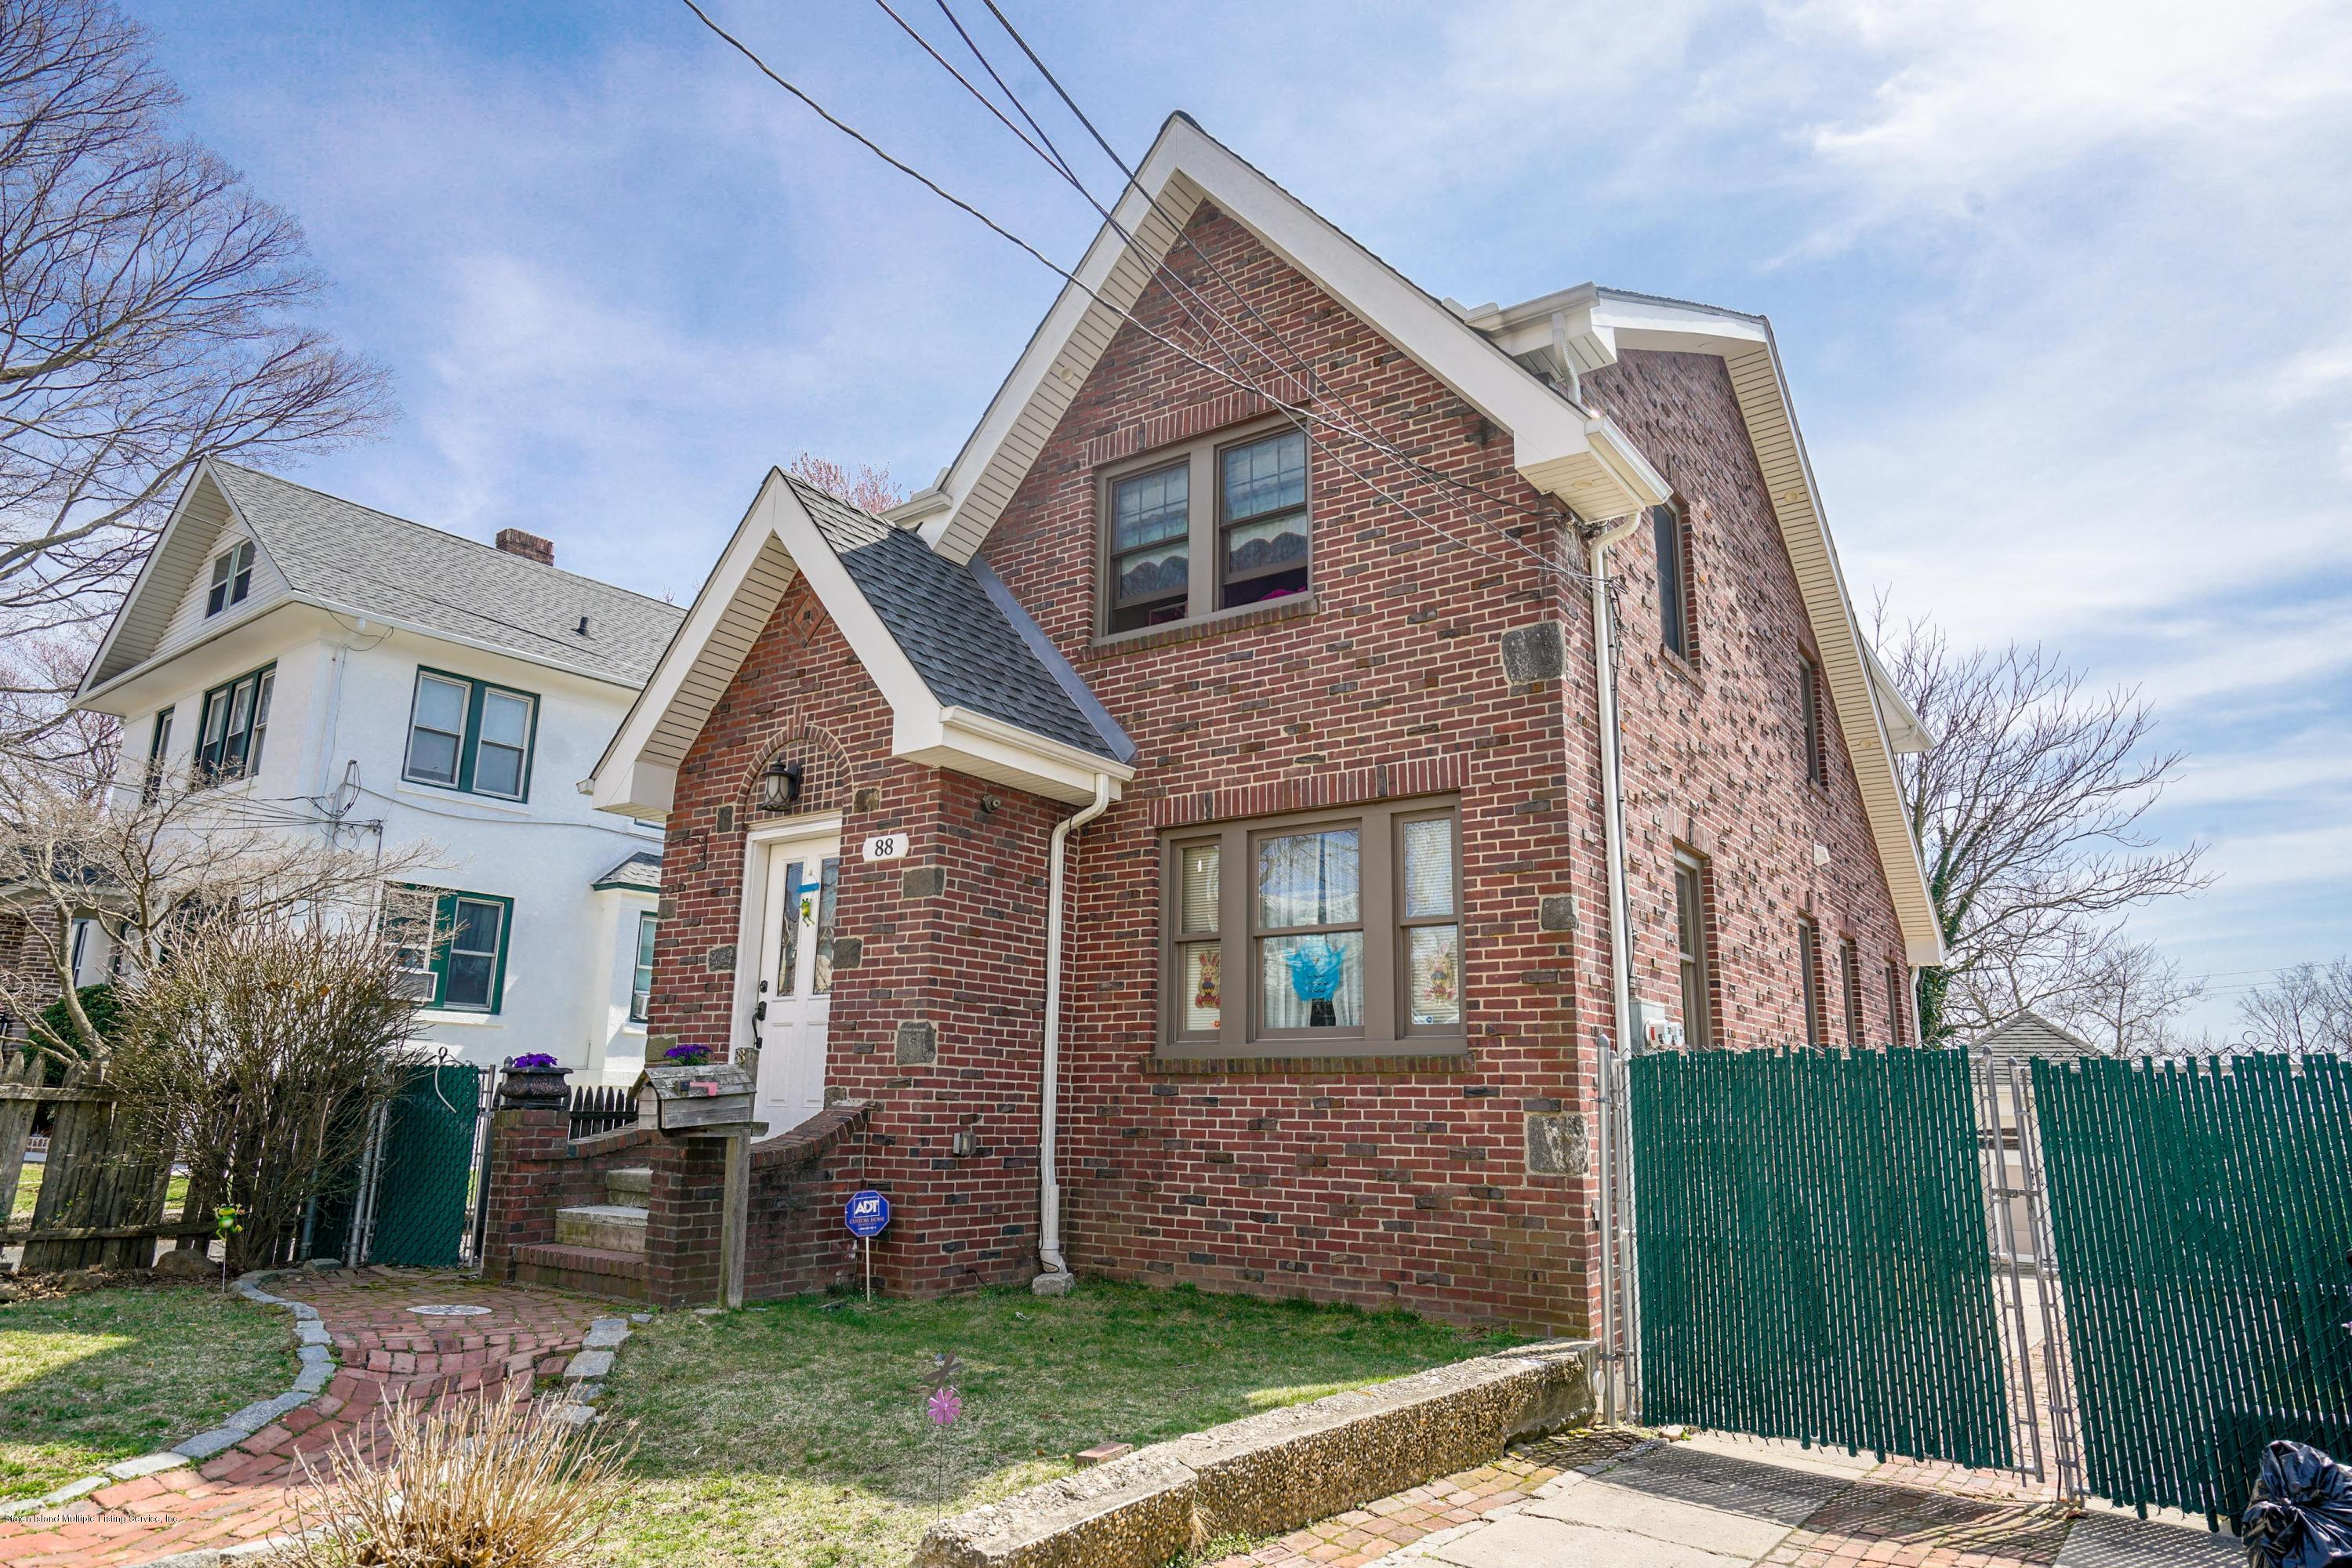 Two Family - Detached 88 Macfarland Avenue  Staten Island, NY 10305, MLS-1128024-2